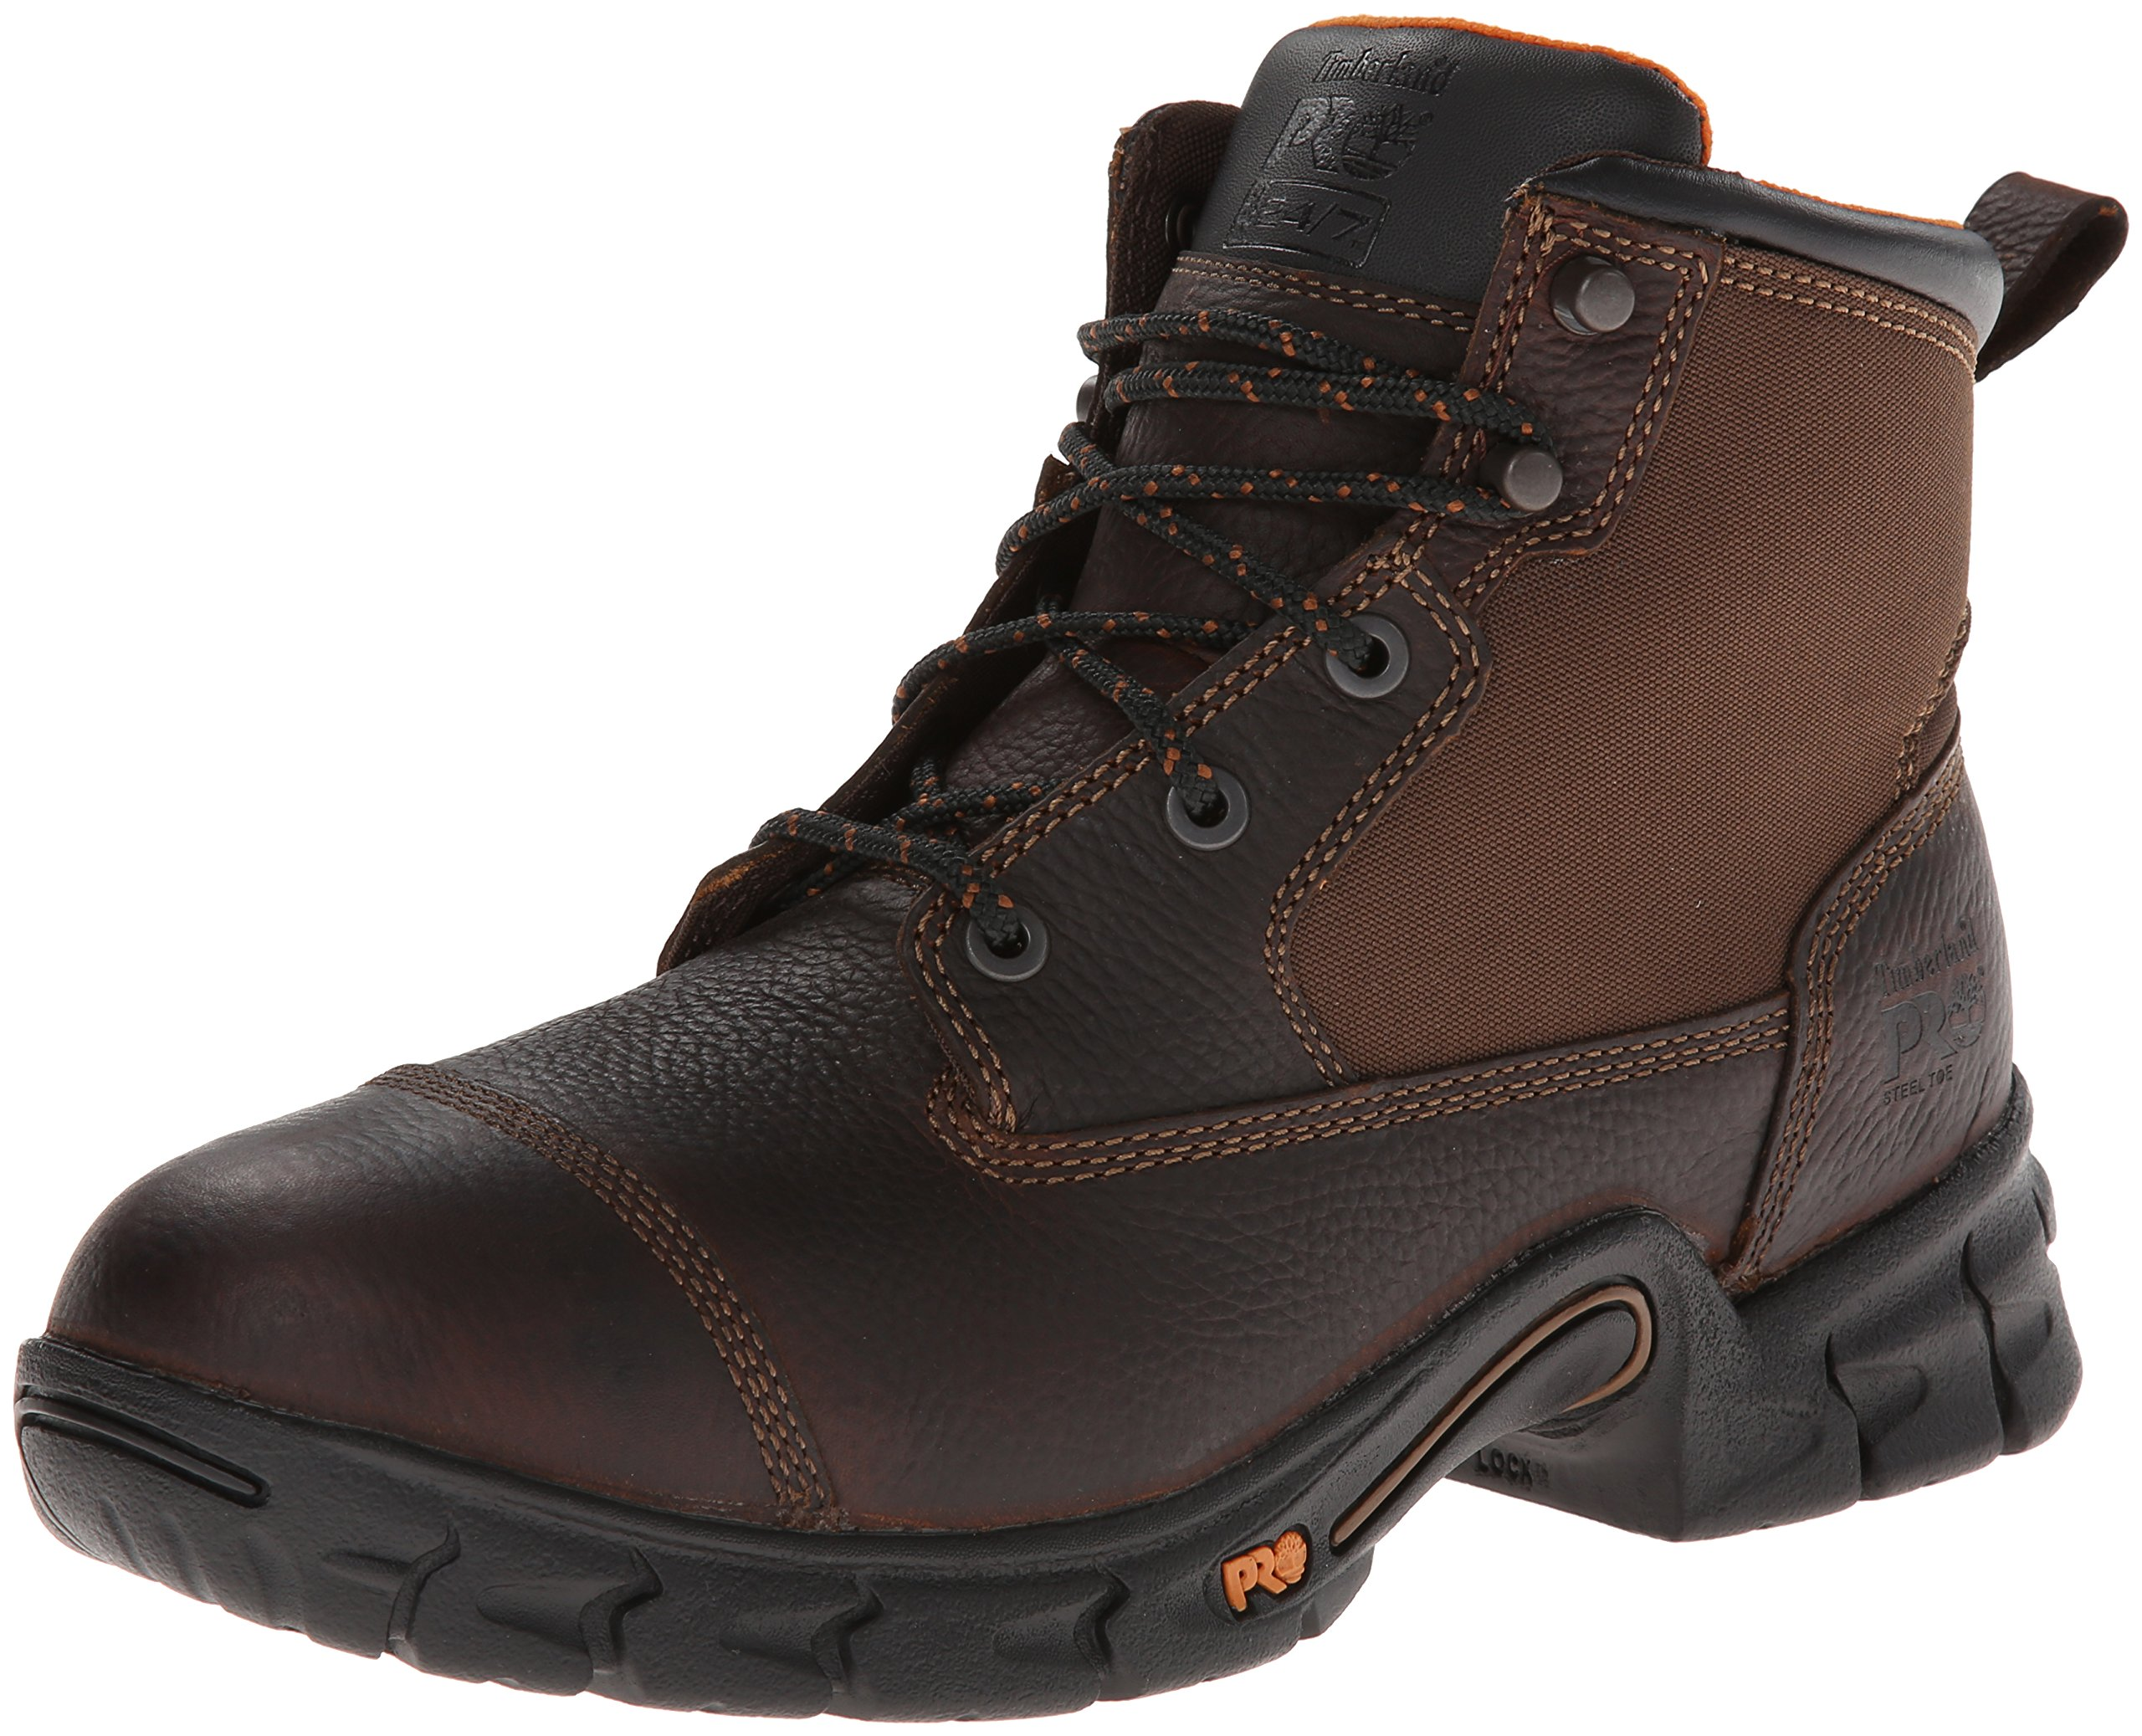 Timberland PRO Men's 6 Inch Excave Steel Safety Toe Work Boot,Brown Full/Grain Leather,10.5 M US